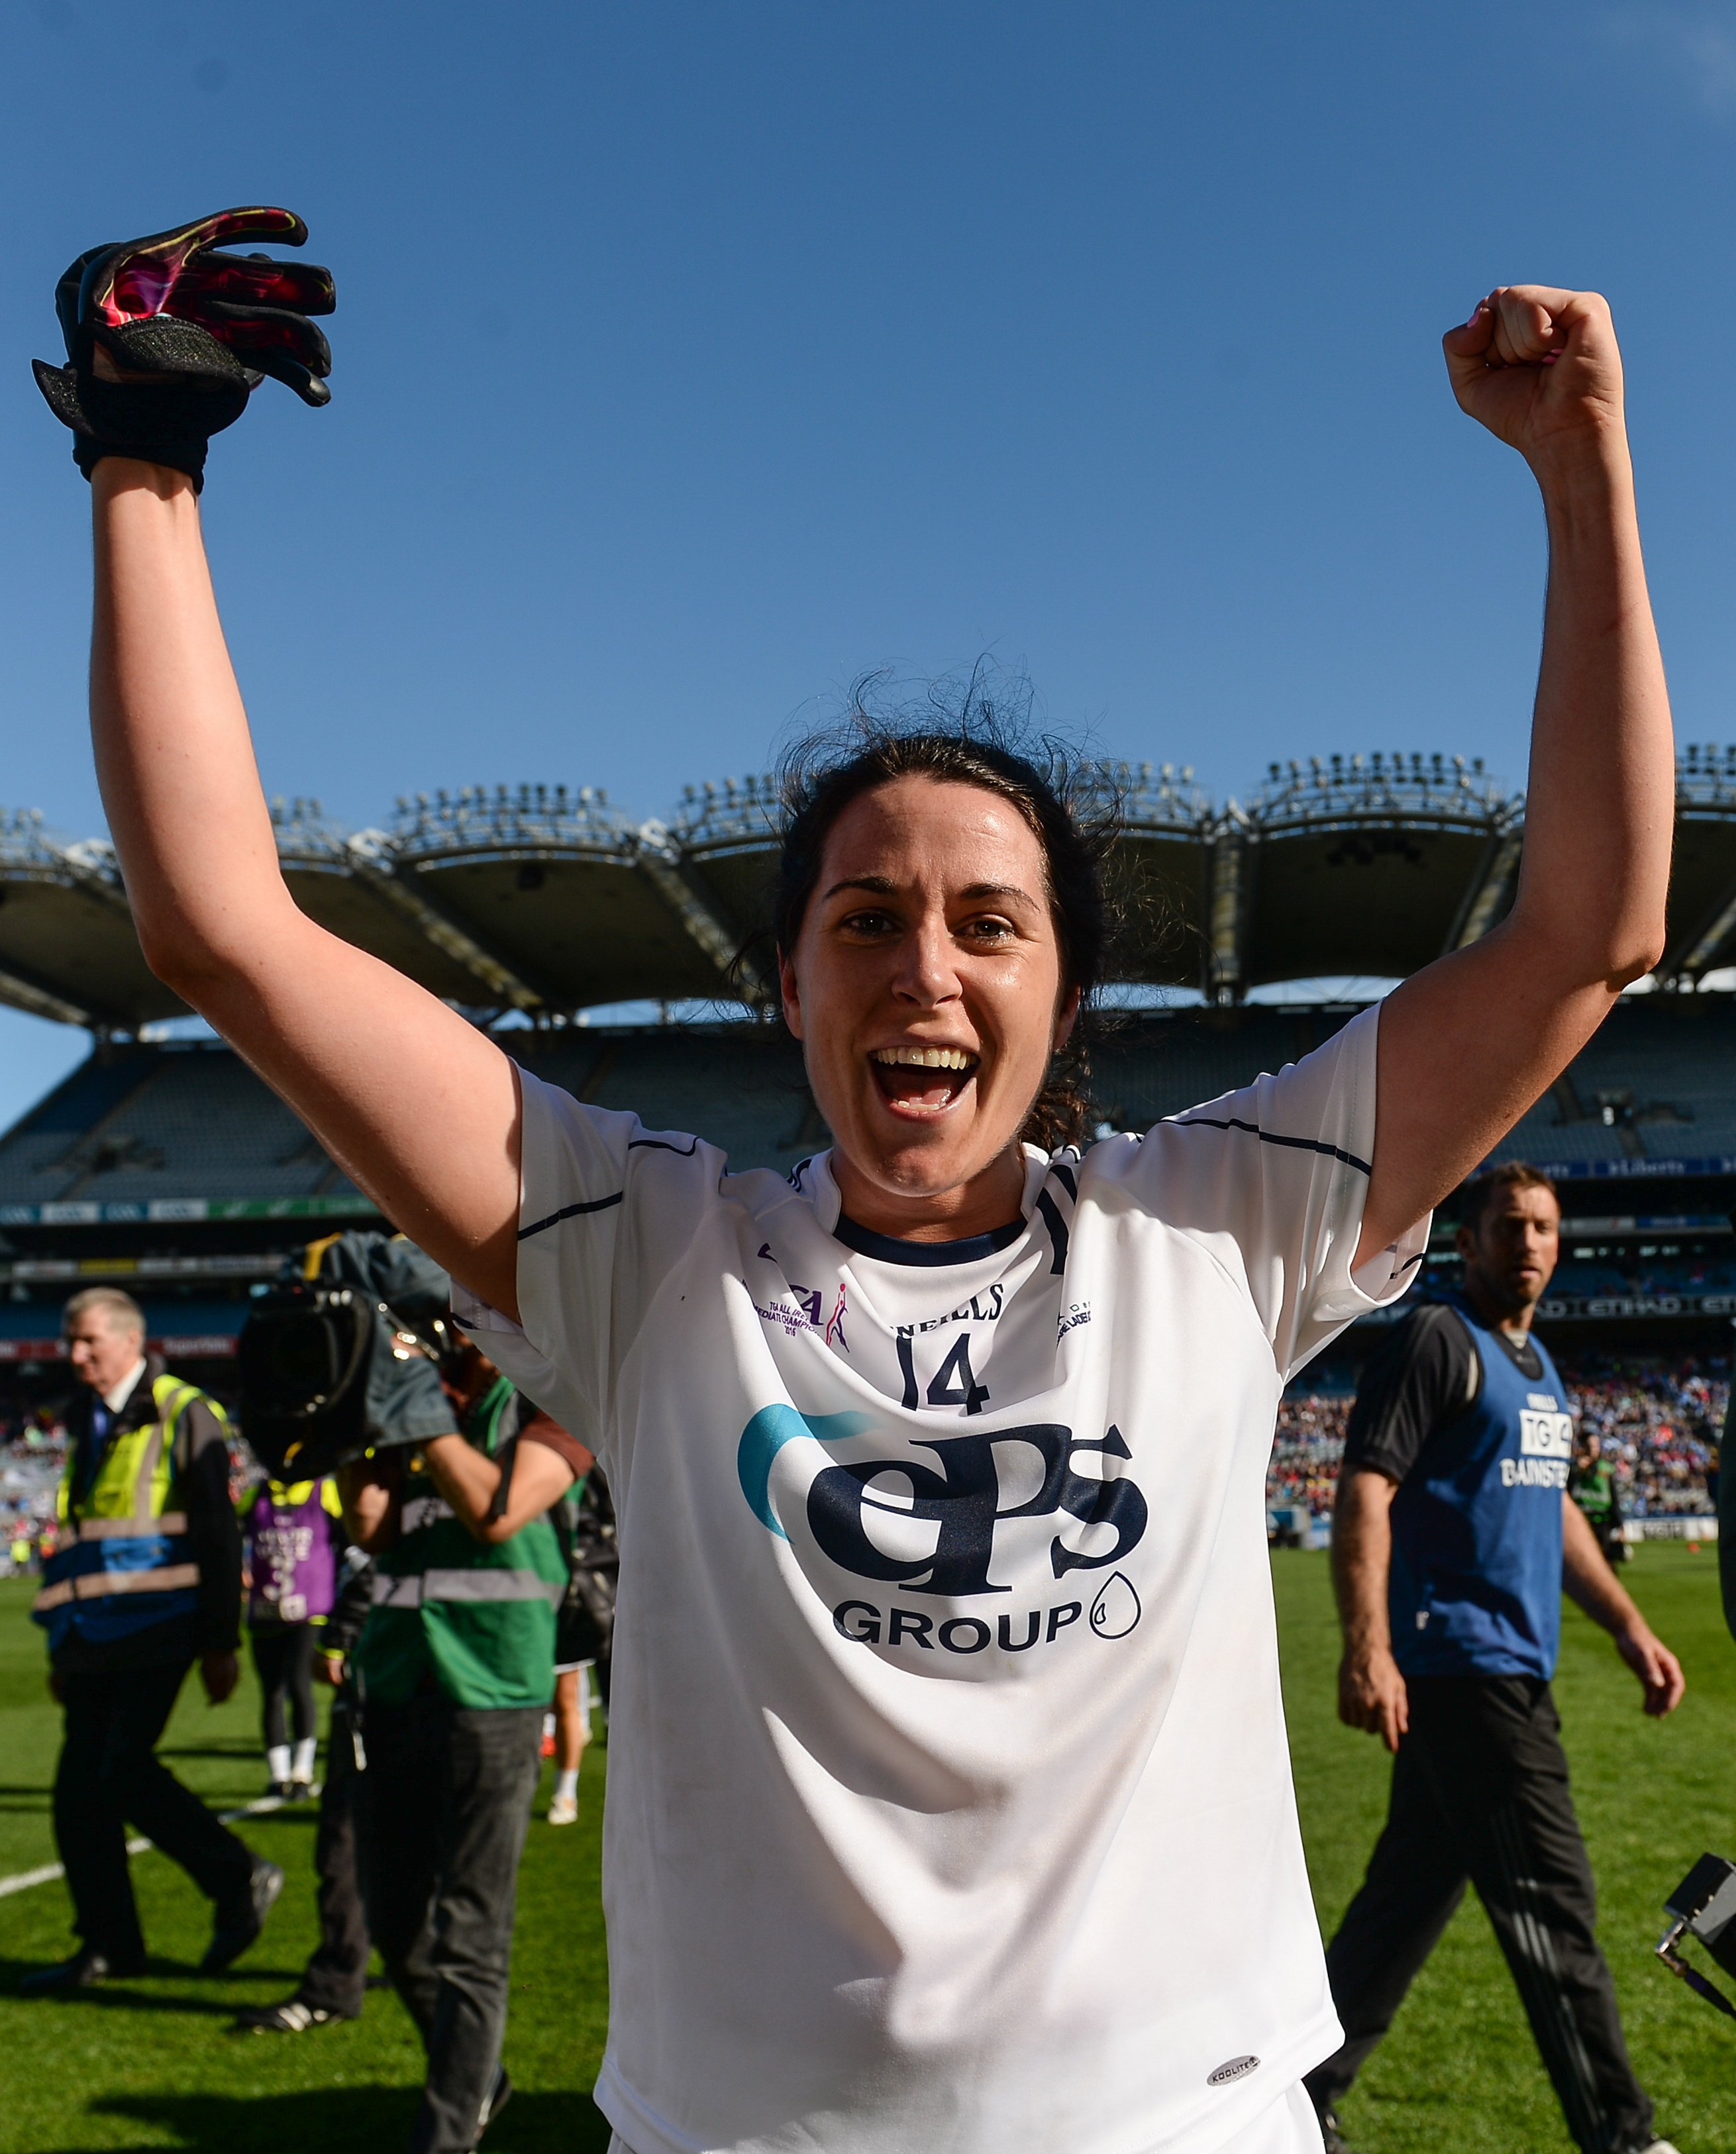 25 September 2016; Noelle Earley of Kildare celebrates after the TG4 Ladies Football All-Ireland Intermediate Football Championship Final match between Clare and Kildare at Croke Park in Dublin.  Photo by Piaras Ó Mídheach/Sportsfile *** NO REPRODUCTION FEE ***